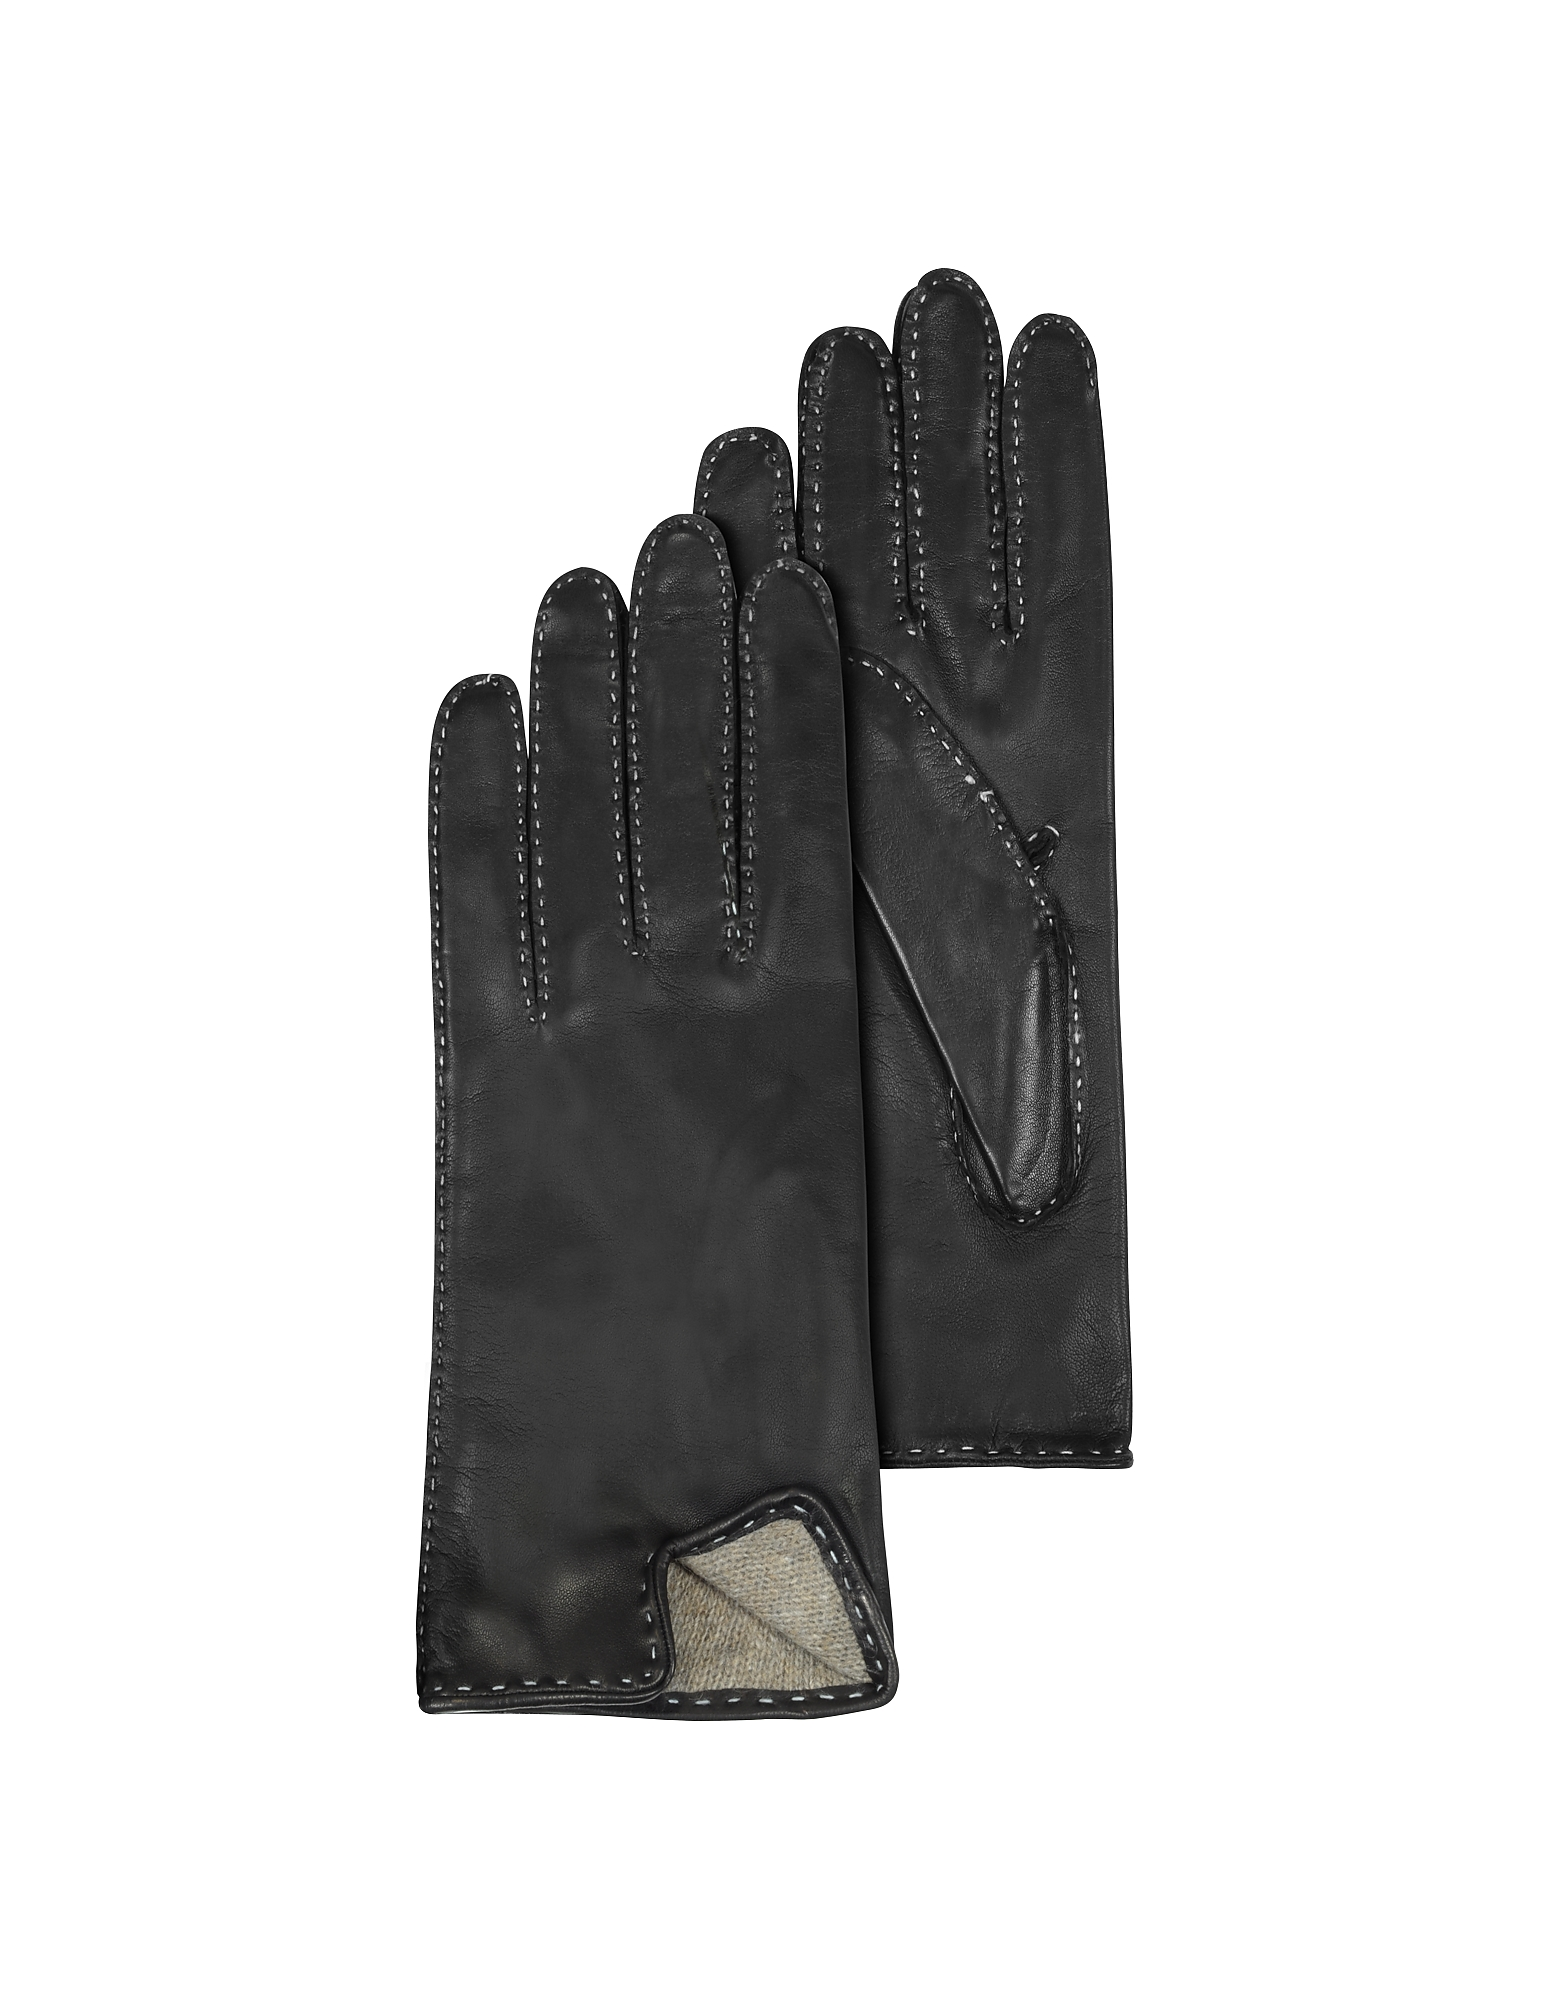 Women's Stitched Cashmere Lined Black Italian Leather Gloves от Forzieri.com INT